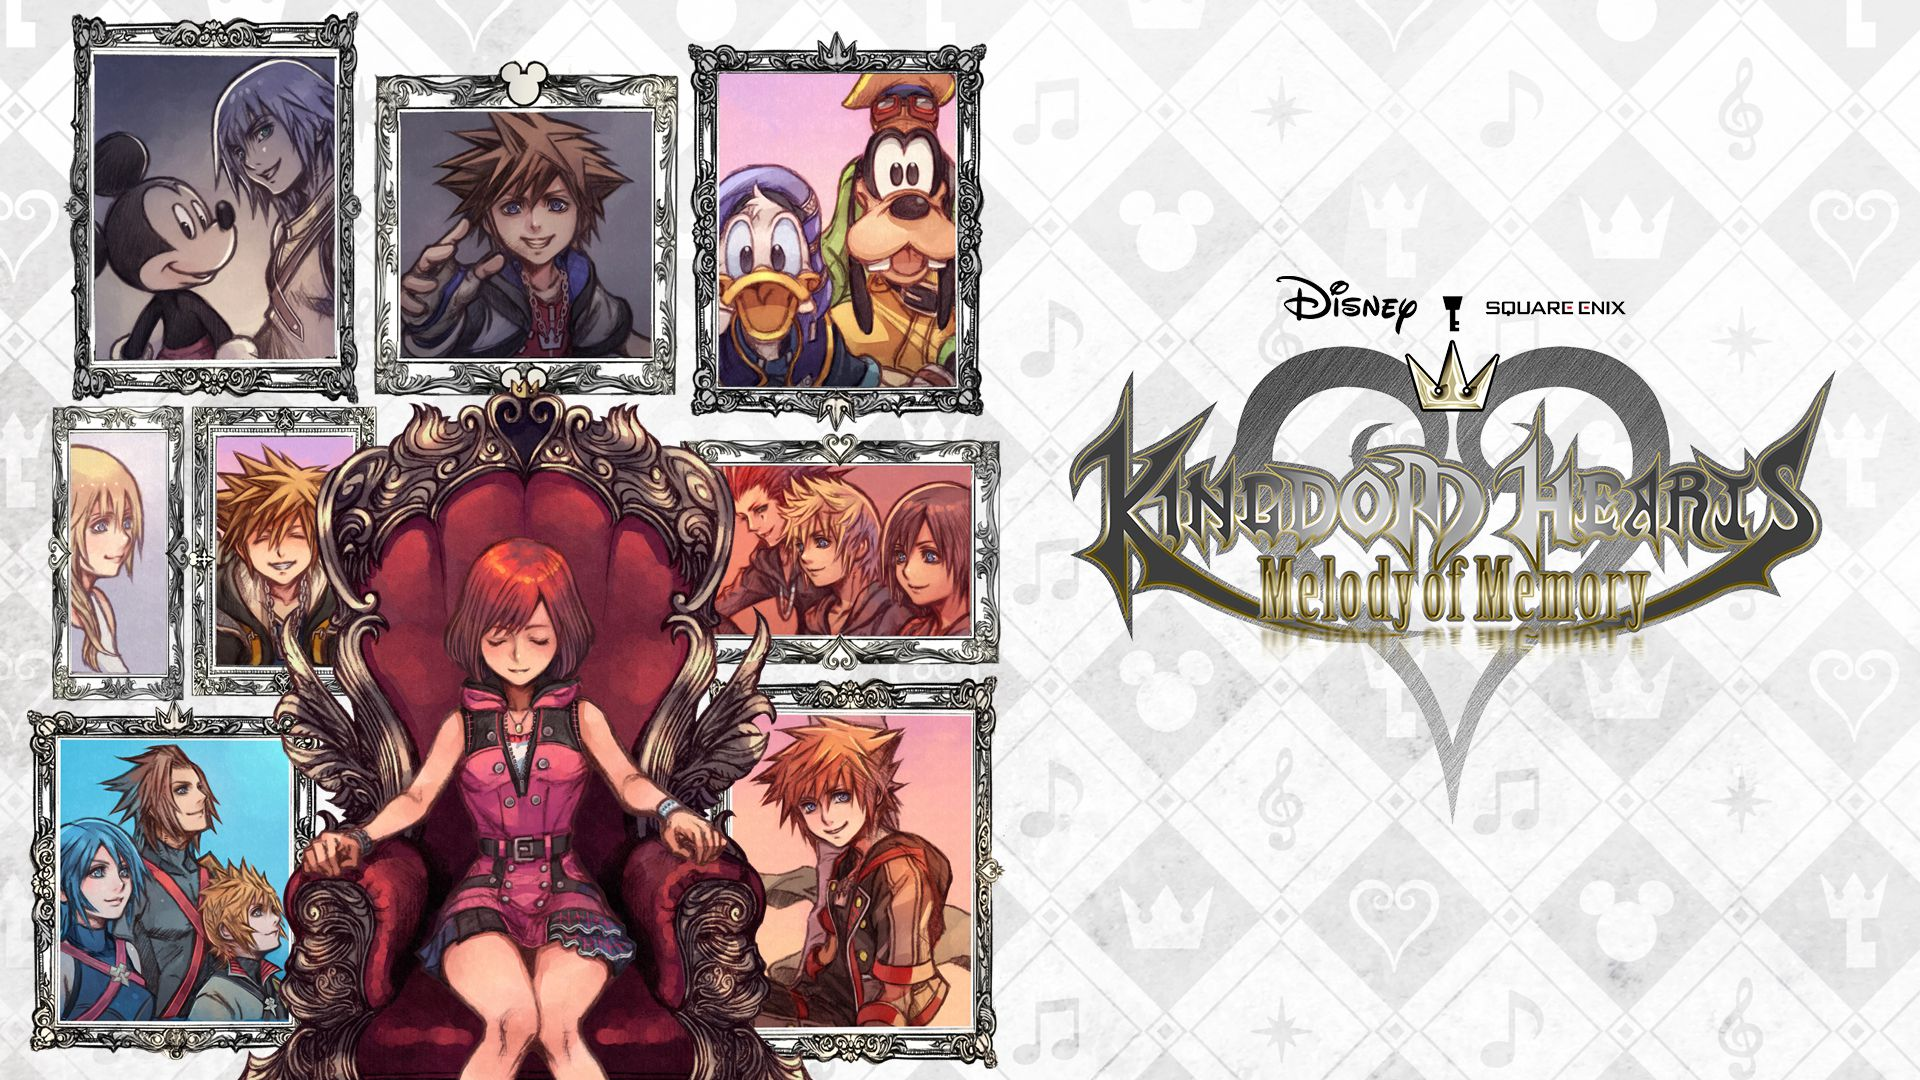 Kingdom Hearts Melody of Memory Principal